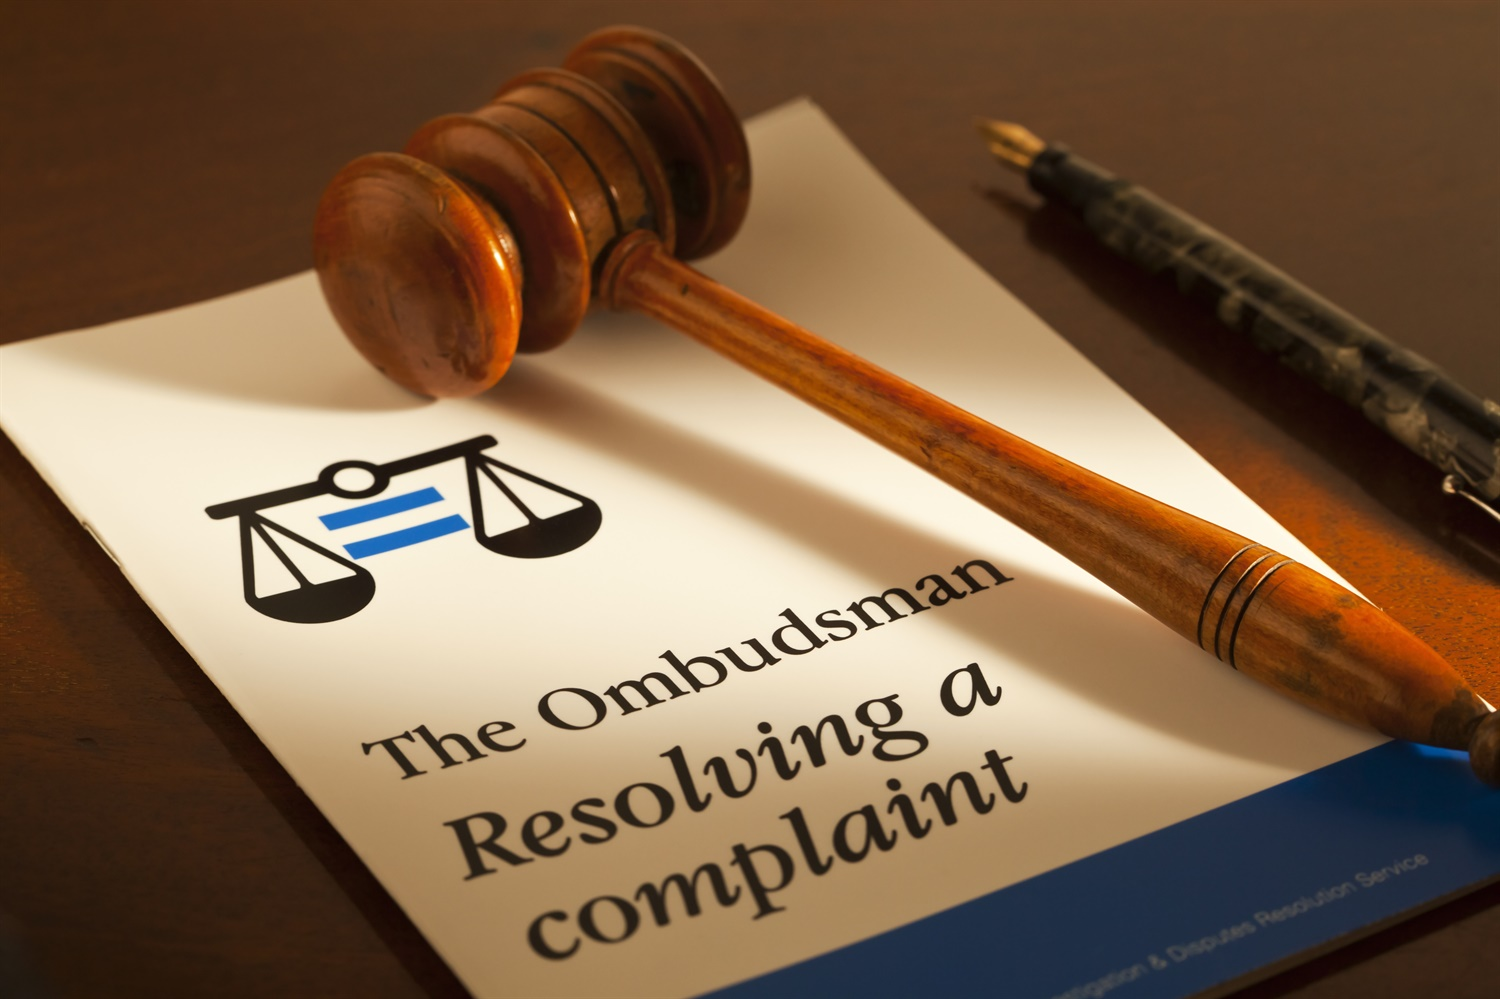 Free and binding rail ombudsman service set for November launch